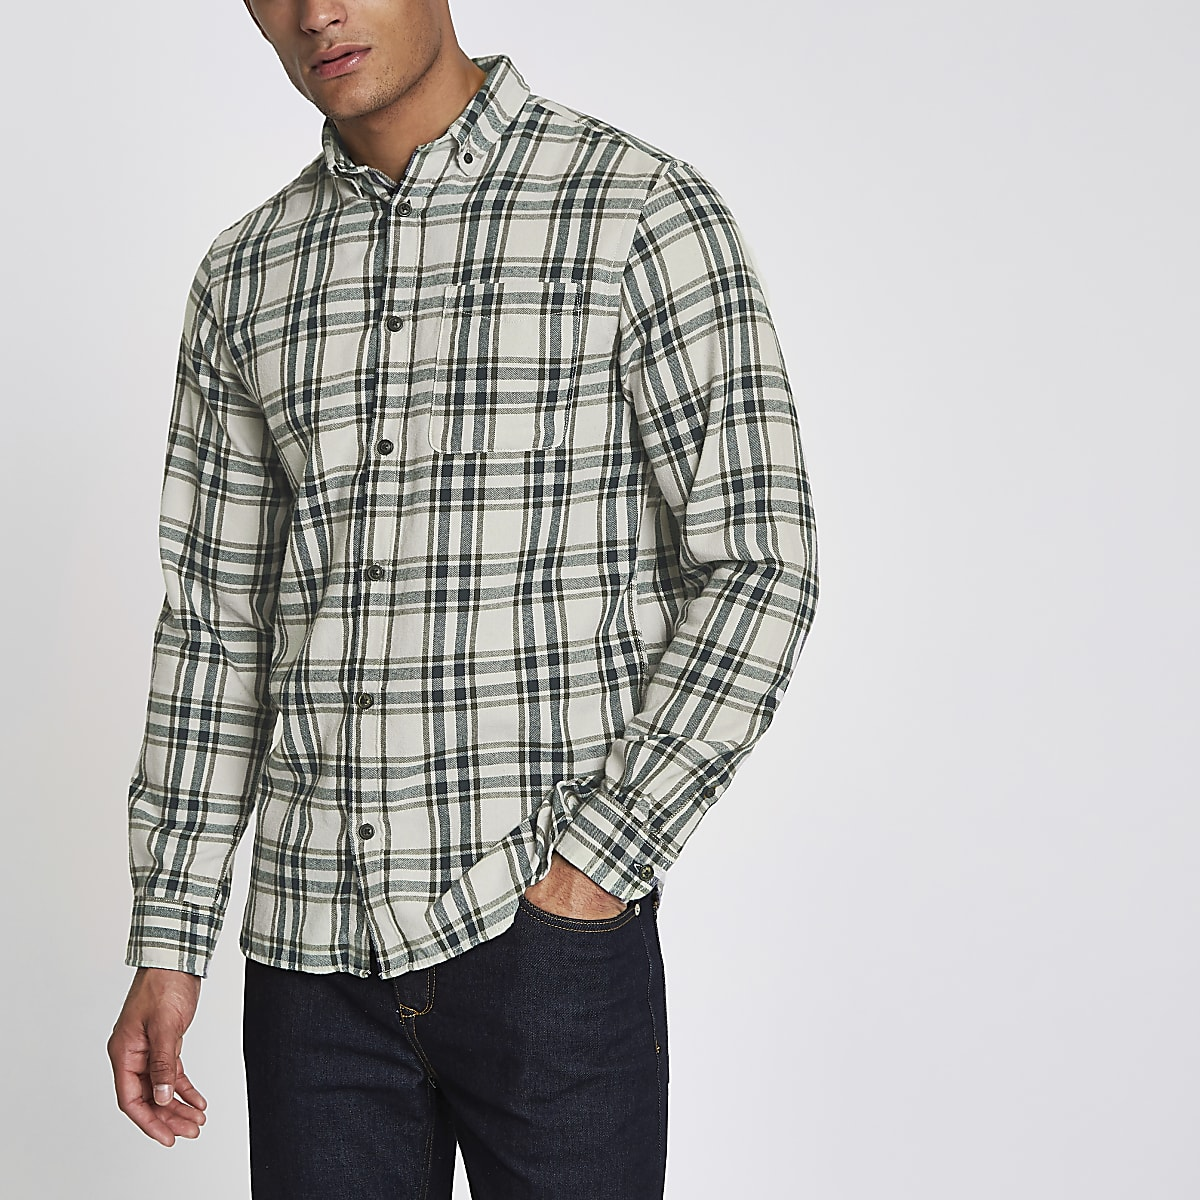 Jack & Jones Original green check shirt